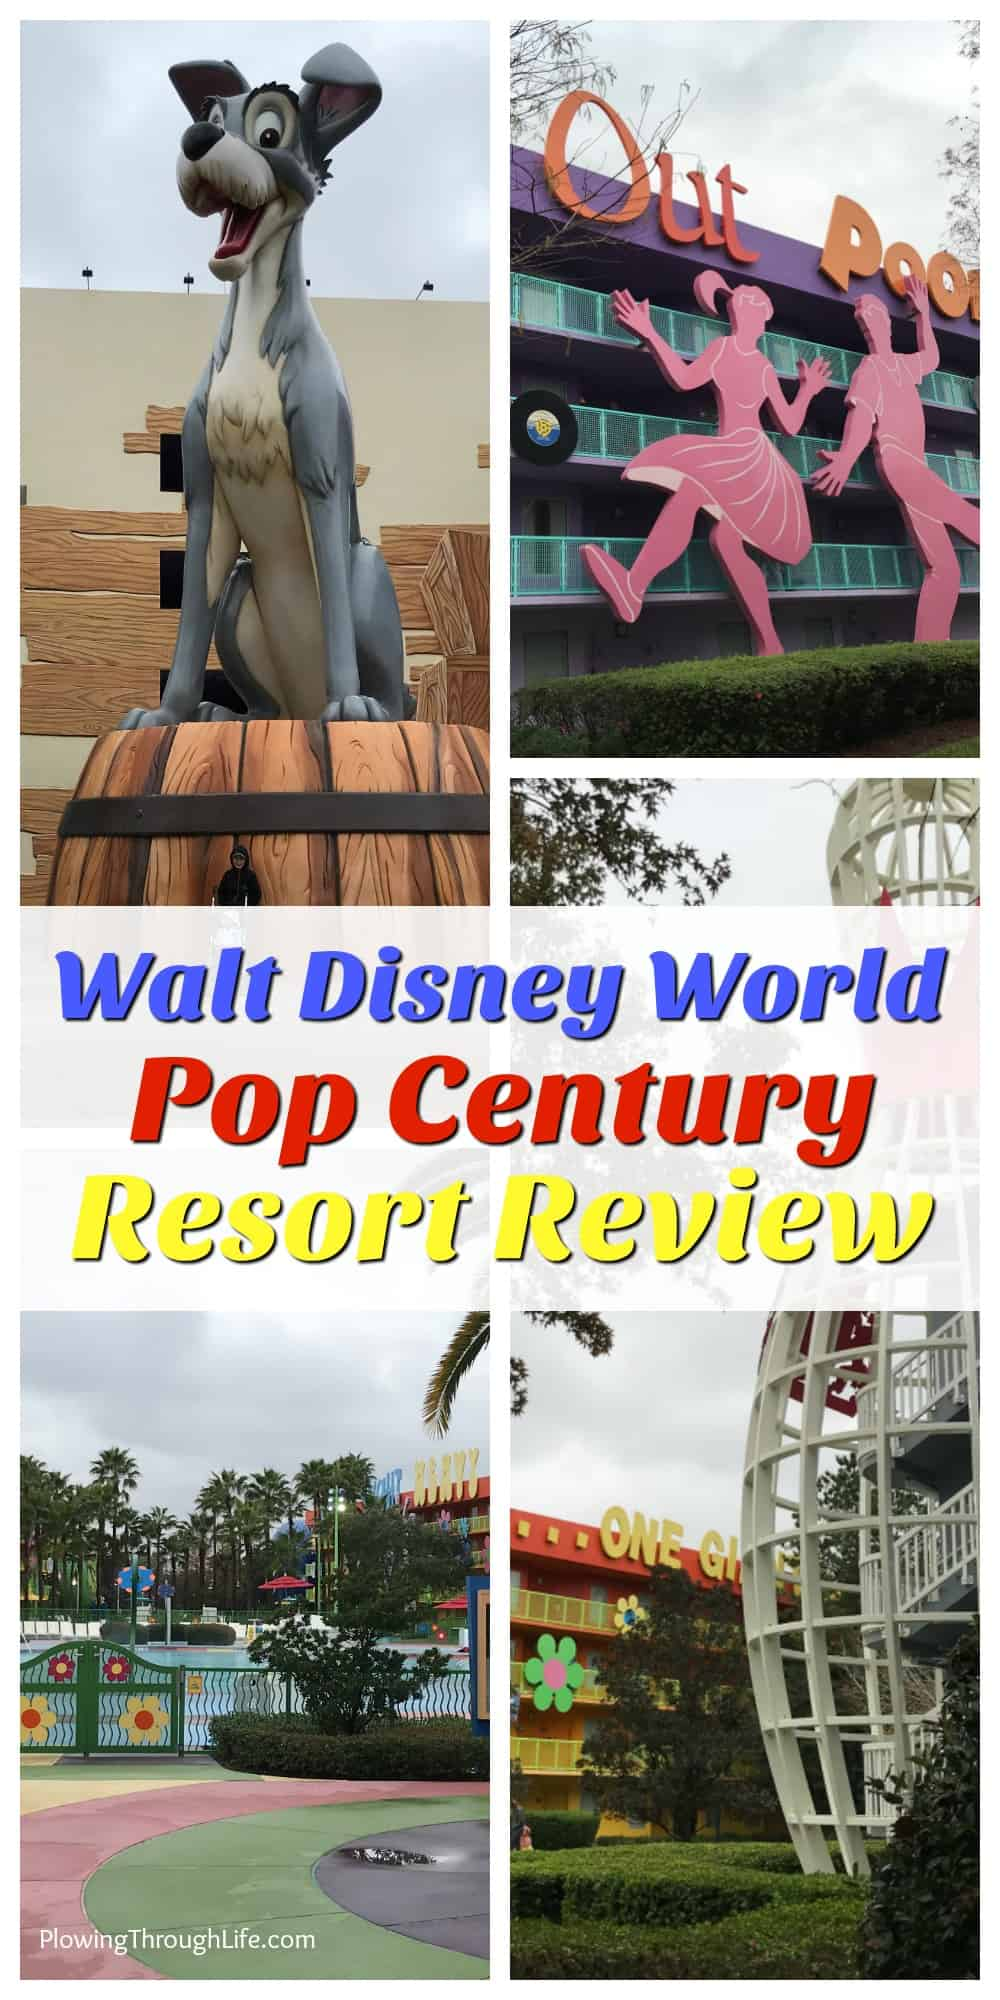 Collage of outside theme decorations at the Pop Century Resort.